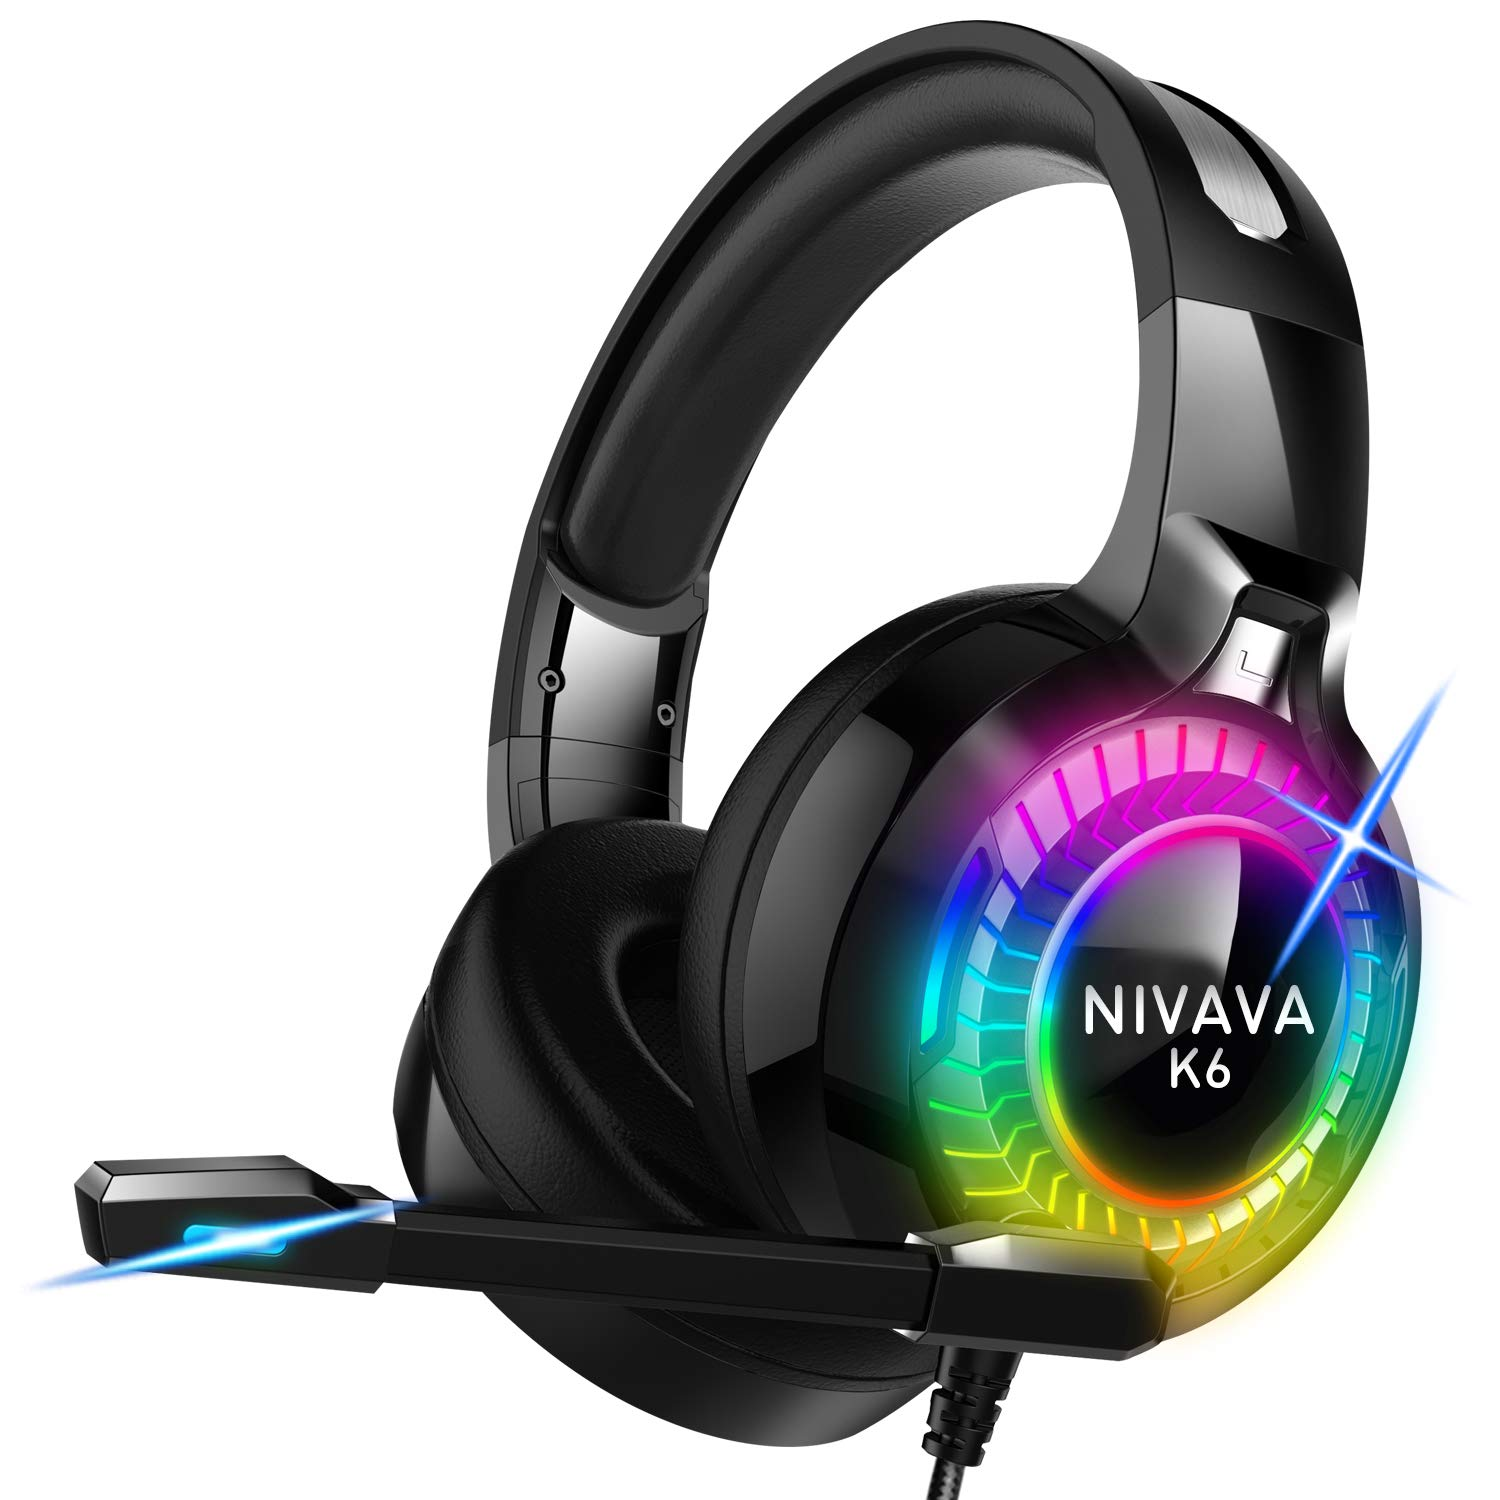 Nivava Gaming Headset for PS4, Xbox One, PC Headphones with Microphone LED Light Mic for Nintendo Switch Playstation…